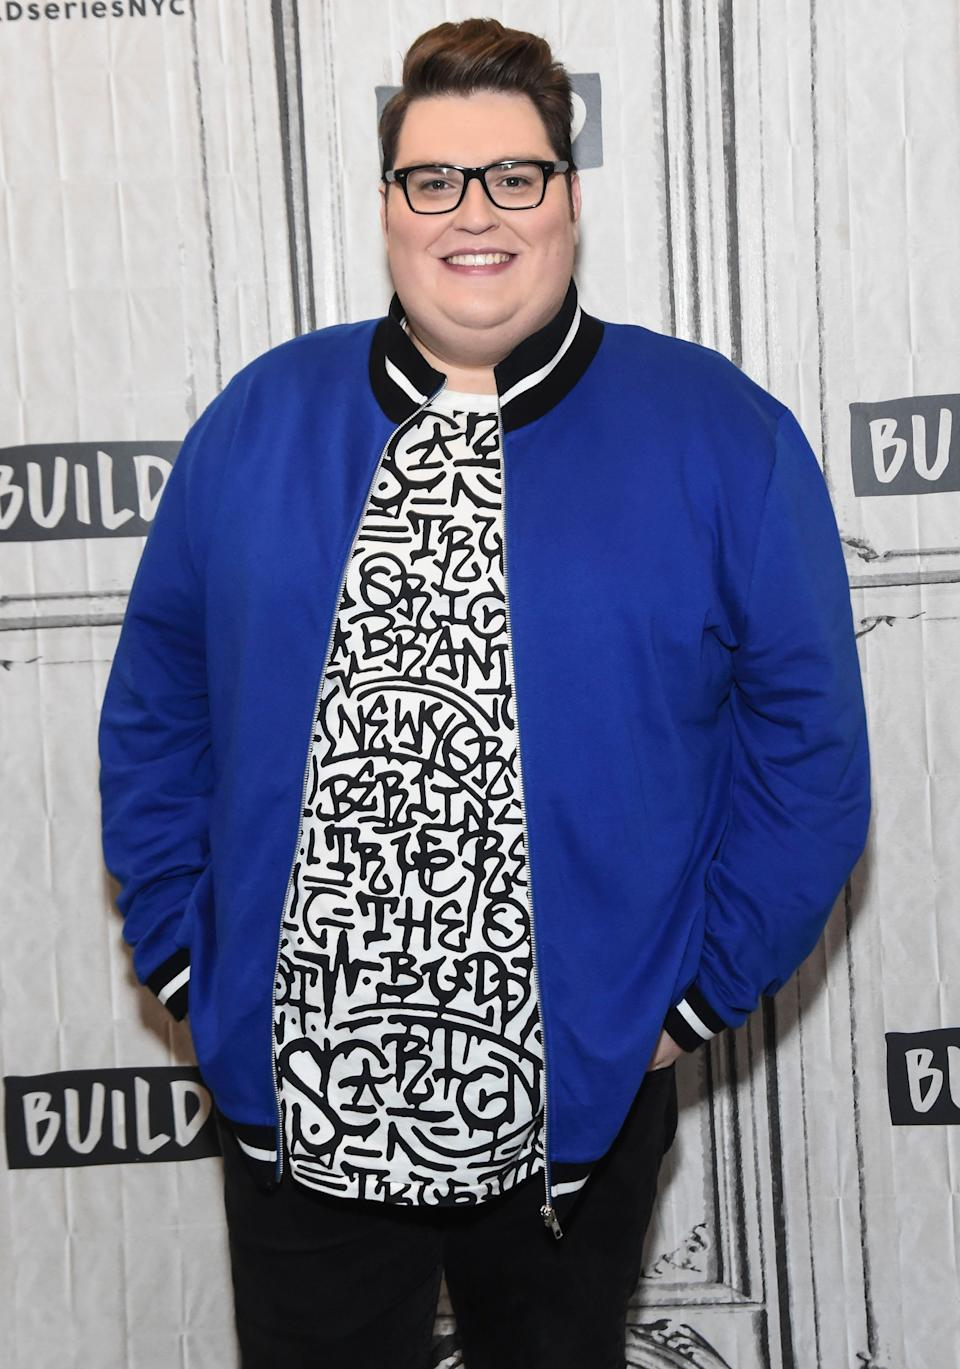 NEW YORK, NY - AUGUST 15:  Jordan Smith attends the Build Series to discuss his new album 'Only Love' at Build Studio on August 15, 2018 in New York City.  (Photo by Daniel Zuchnik/WireImage)